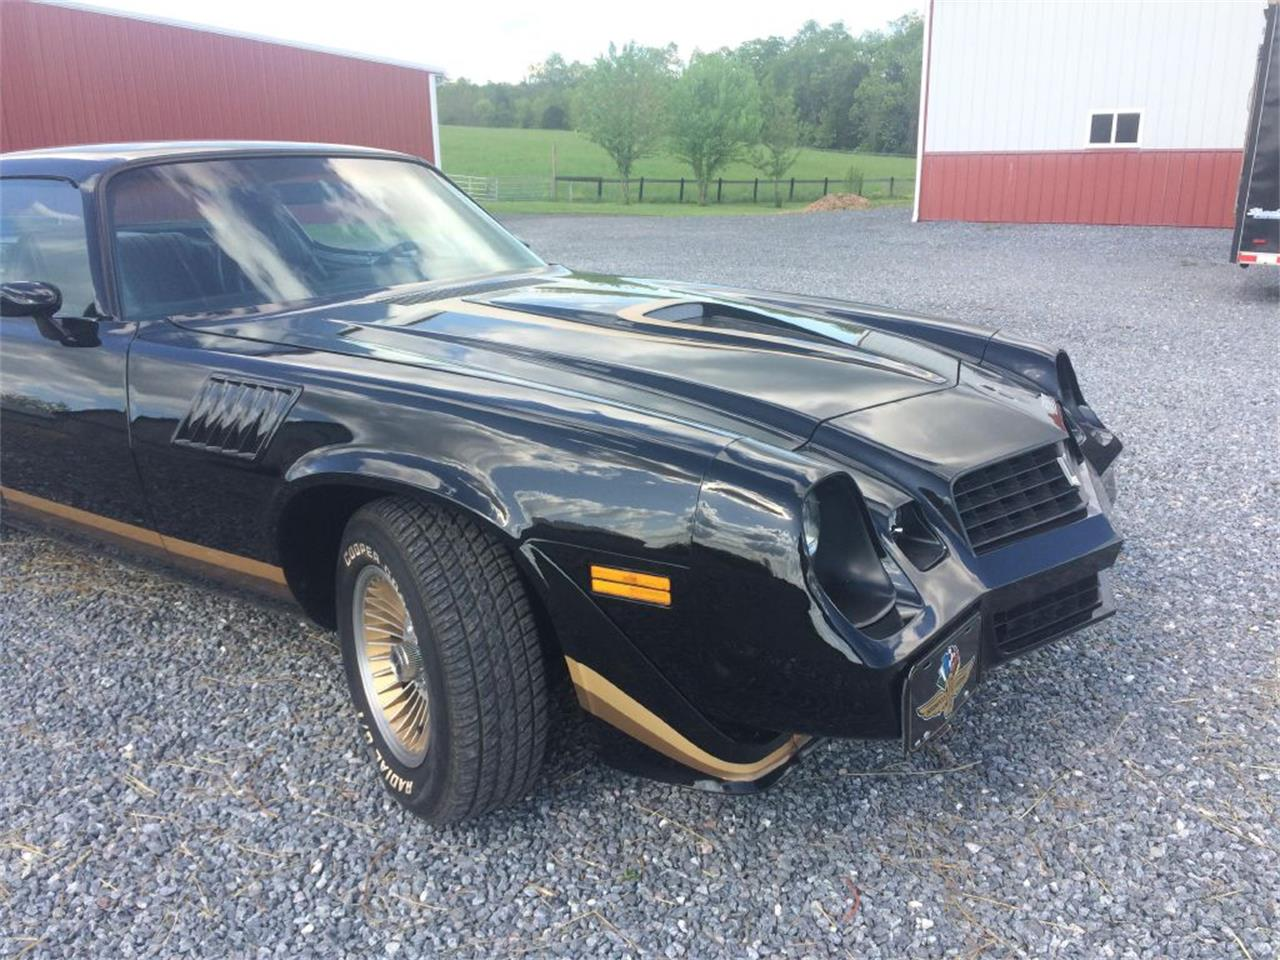 1979 Chevrolet Camaro (CC-1234069) for sale in West Pittston, Pennsylvania